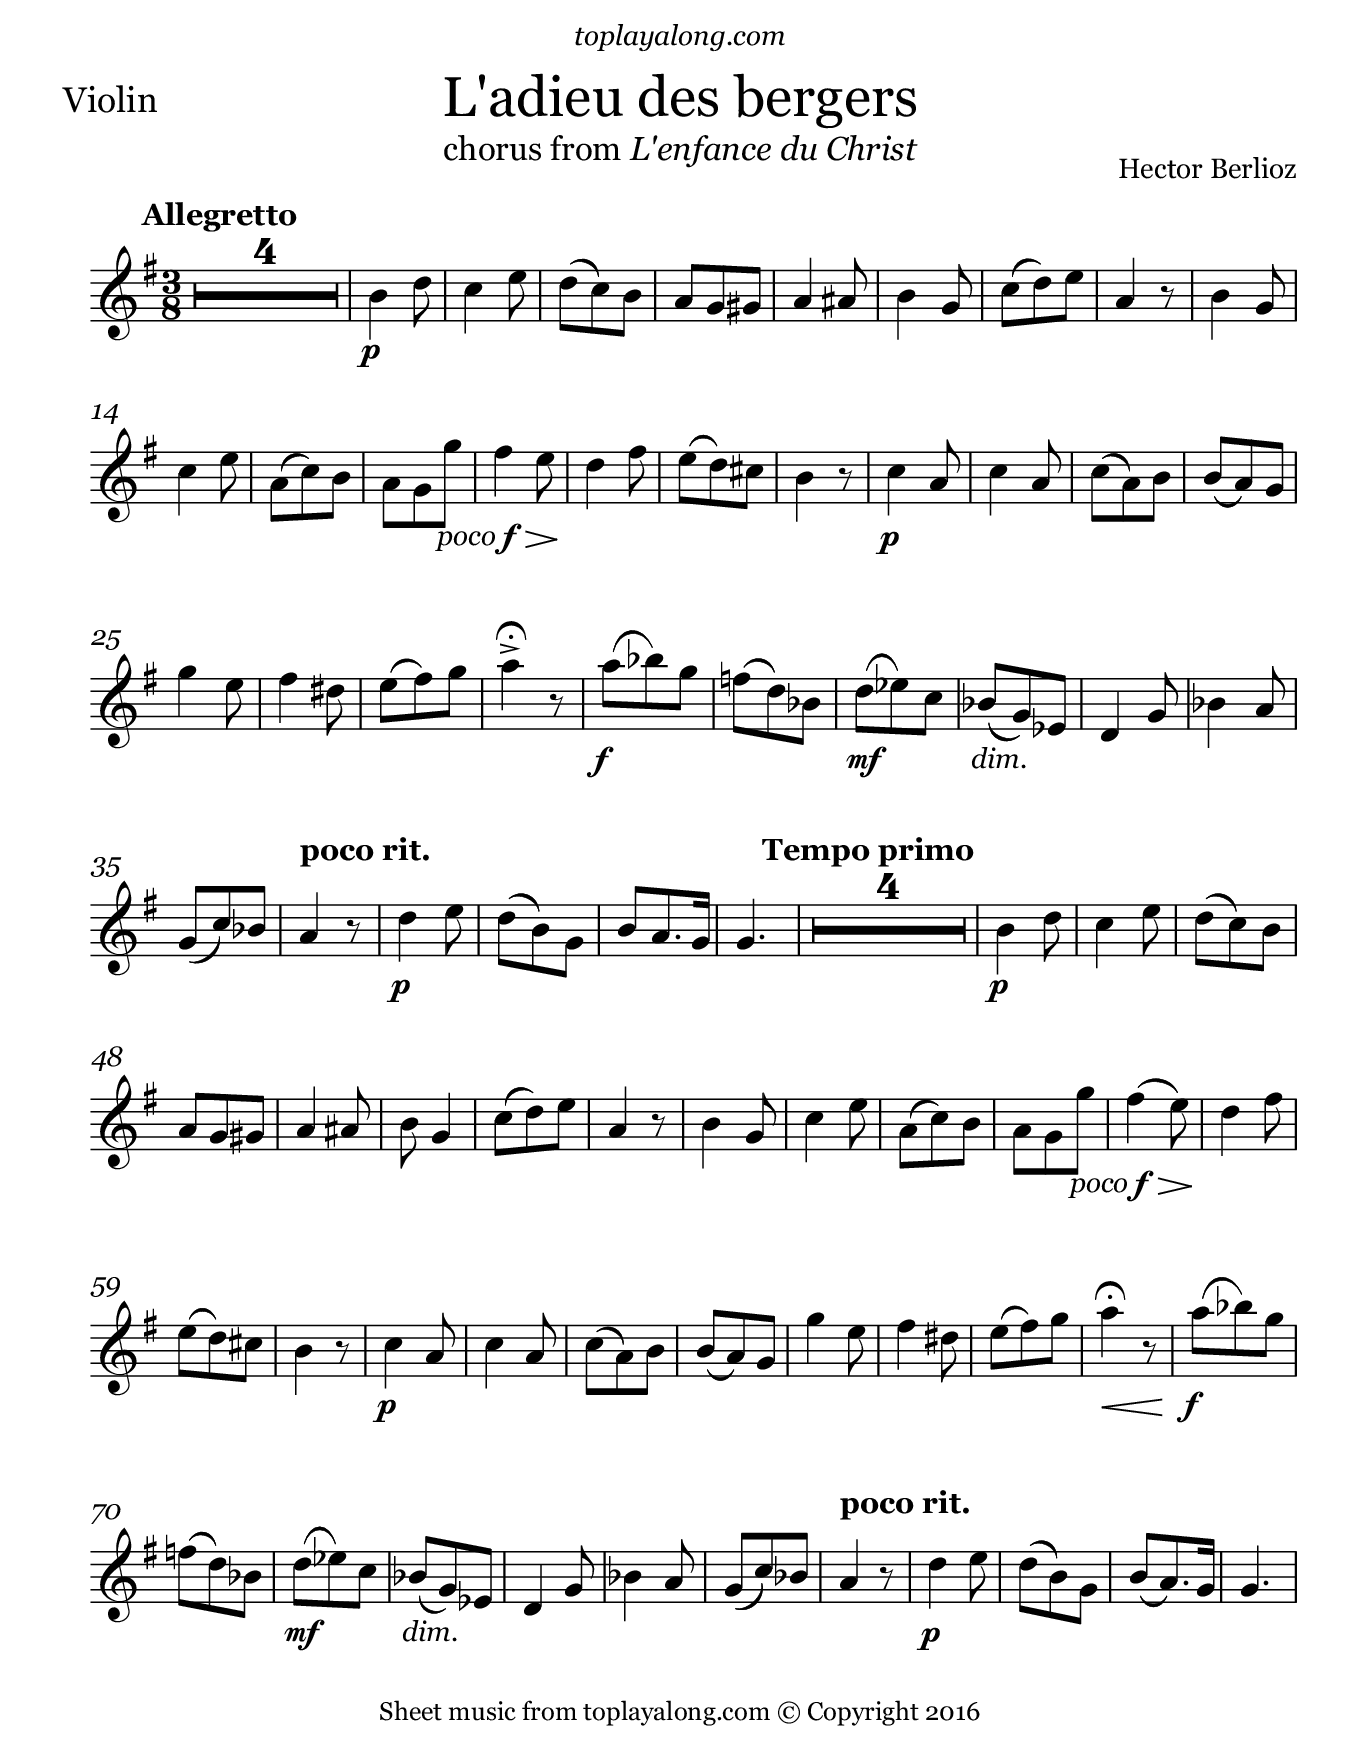 L'adieu des bergers from L'enfance du Christ by Berlioz. Sheet music for Violin, page 1.